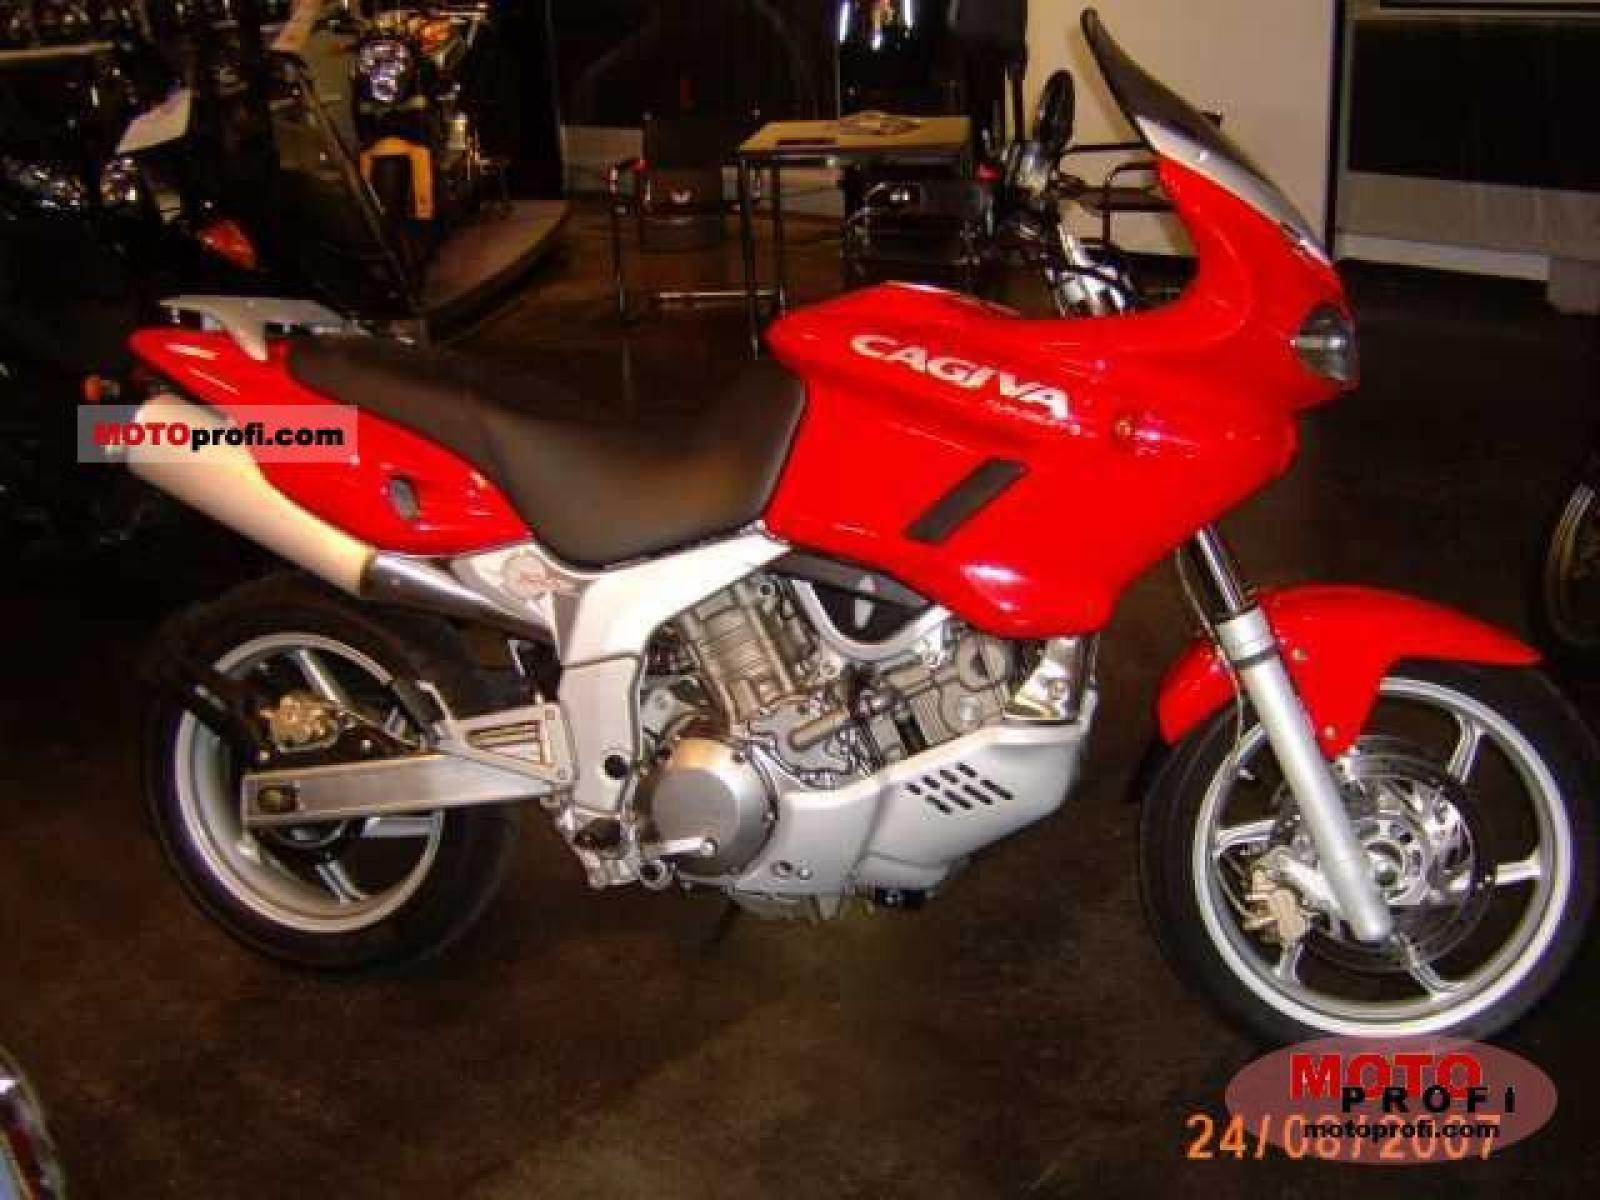 Cagiva Navigator 1000 2004 images #67972